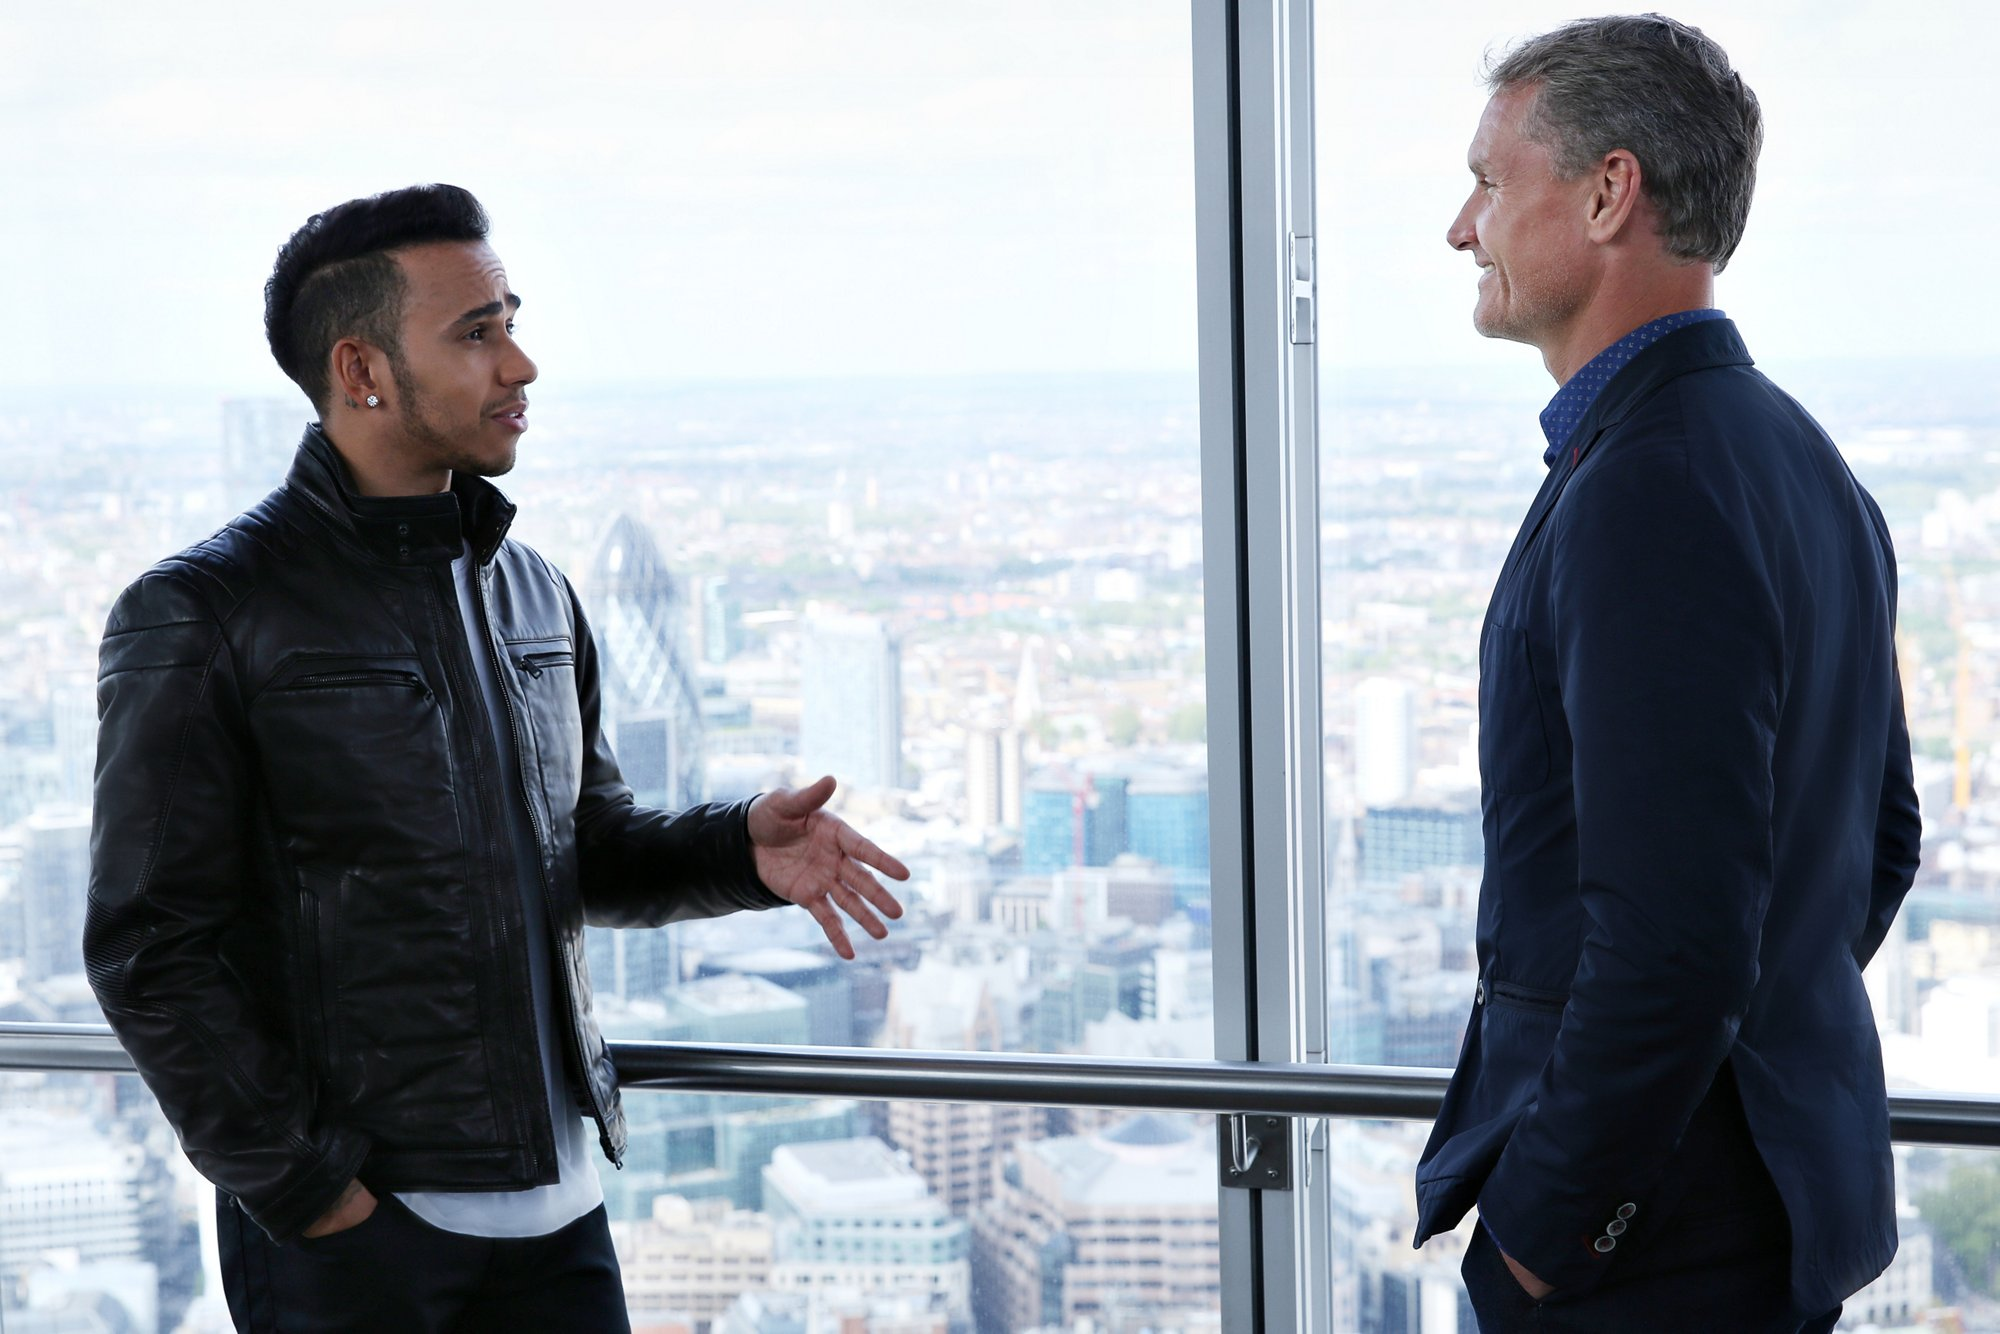 Lewis Hamilton wearing a black leather jacket by BOSS, David Coulthard wearing a dark blue suit by BOSS